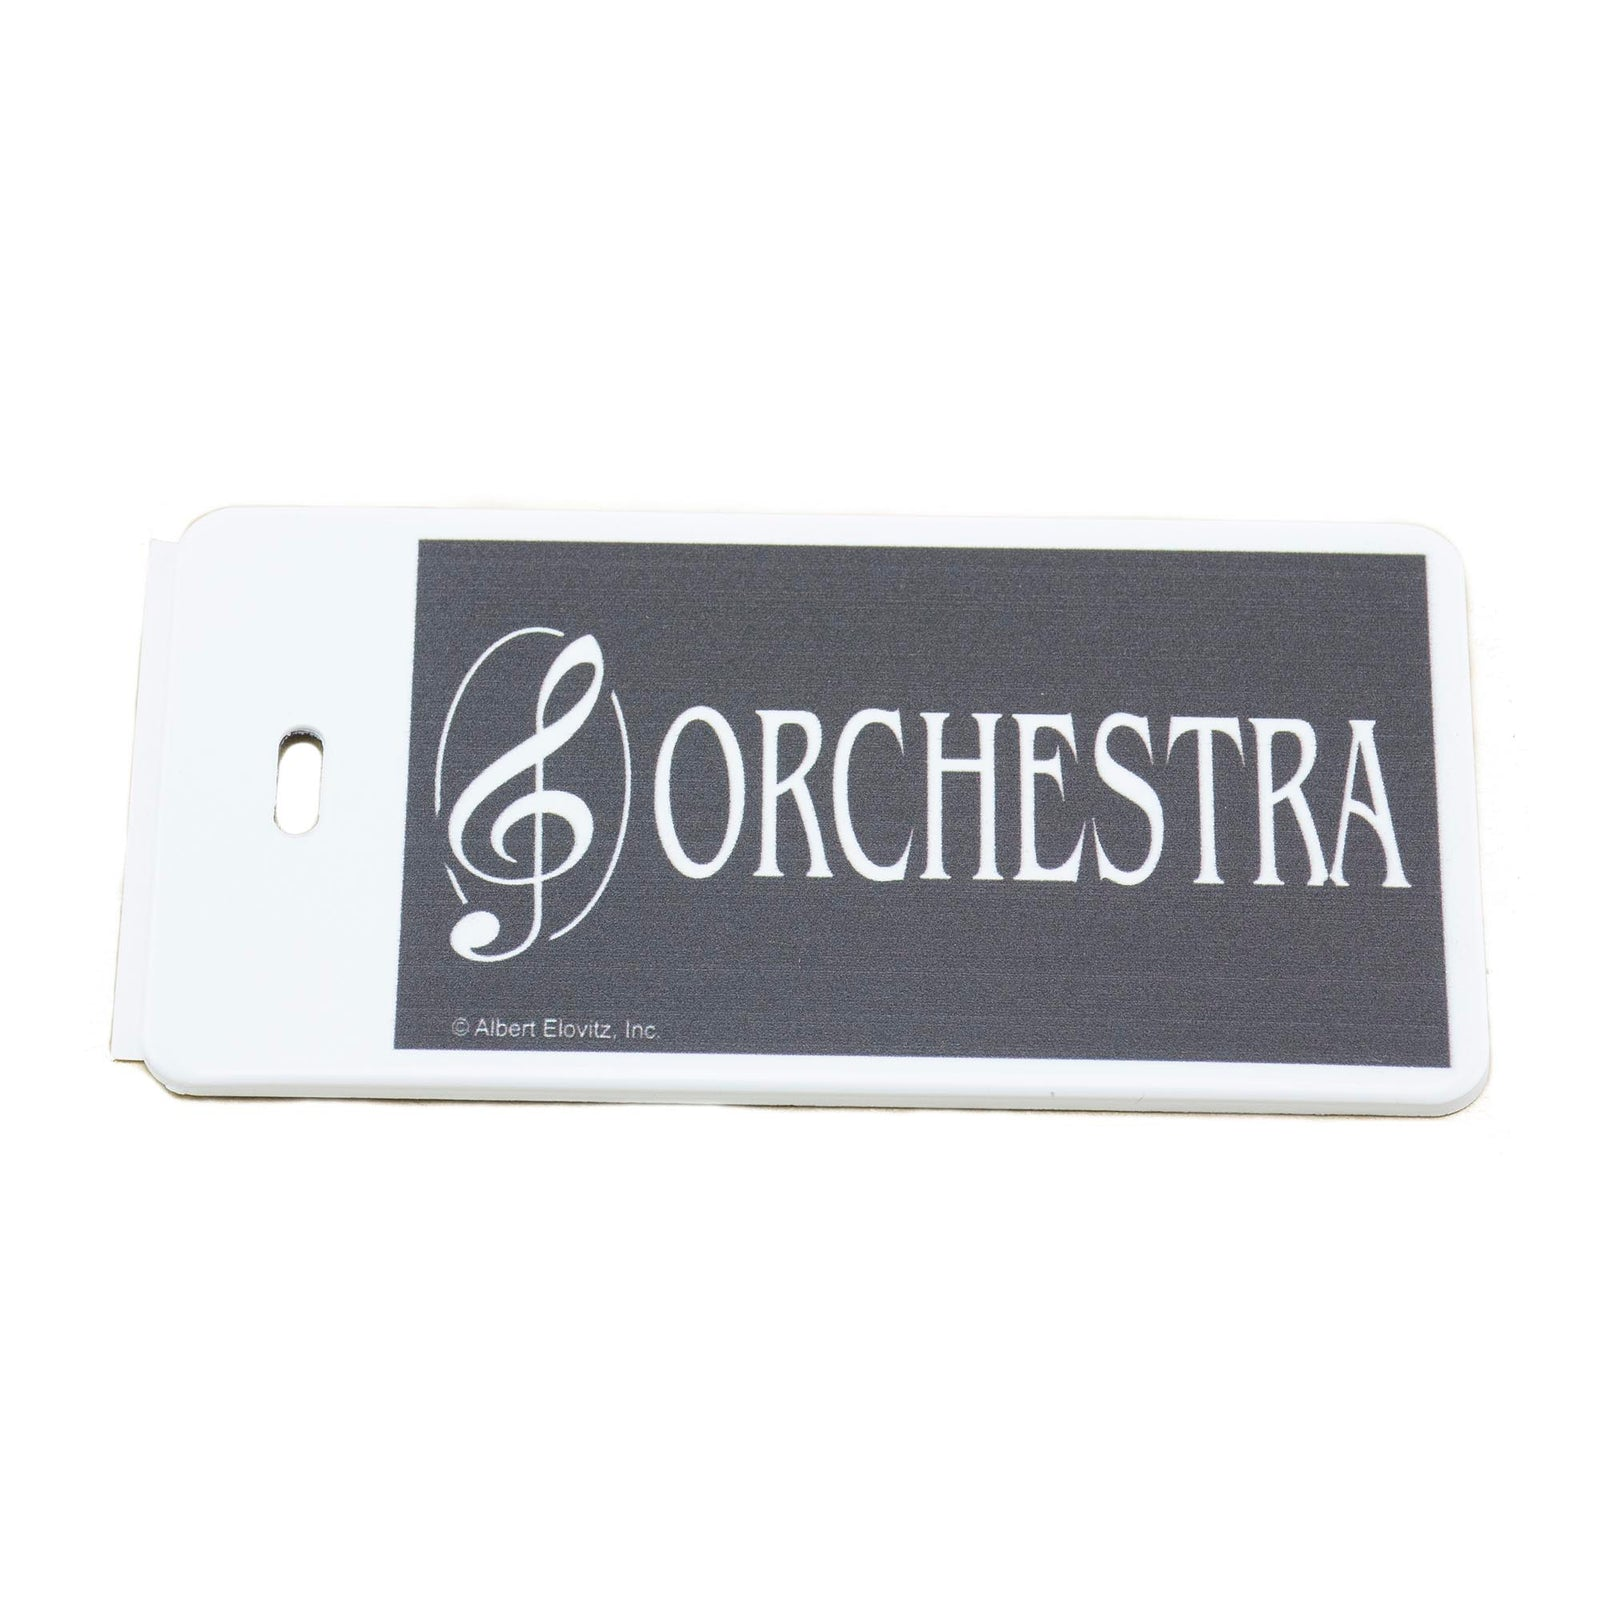 Orchestra ID Tag